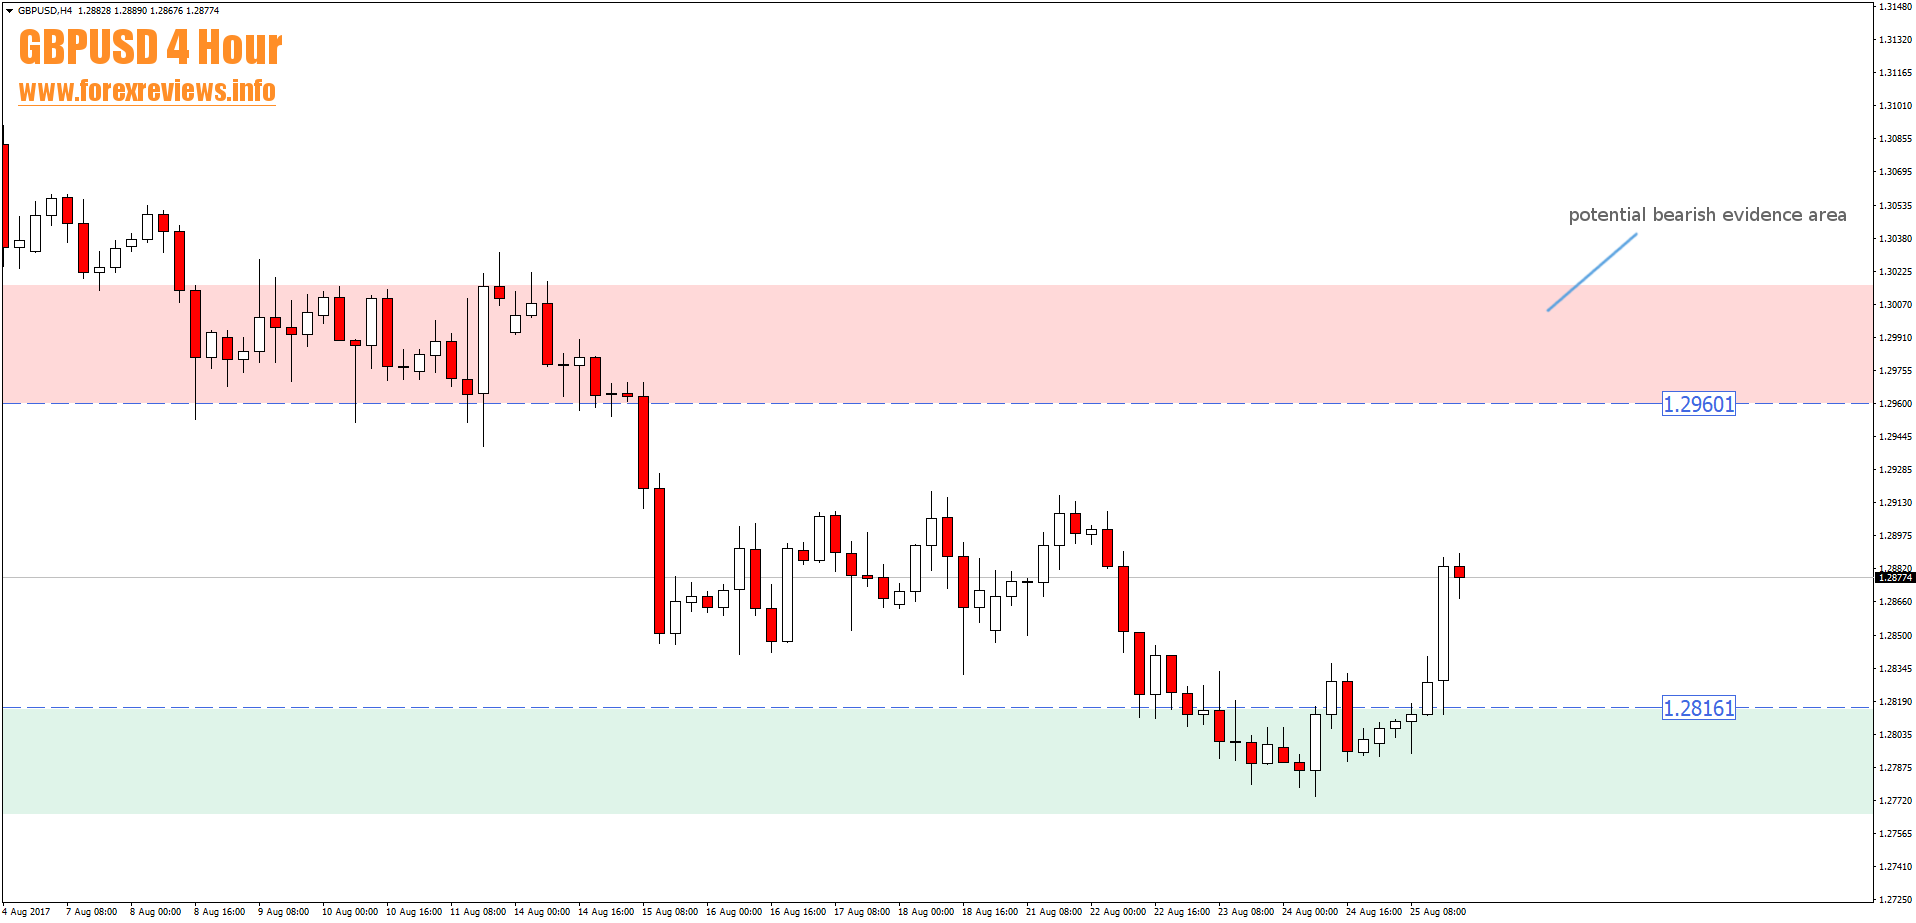 gbpusd 4 hour trade setup areas